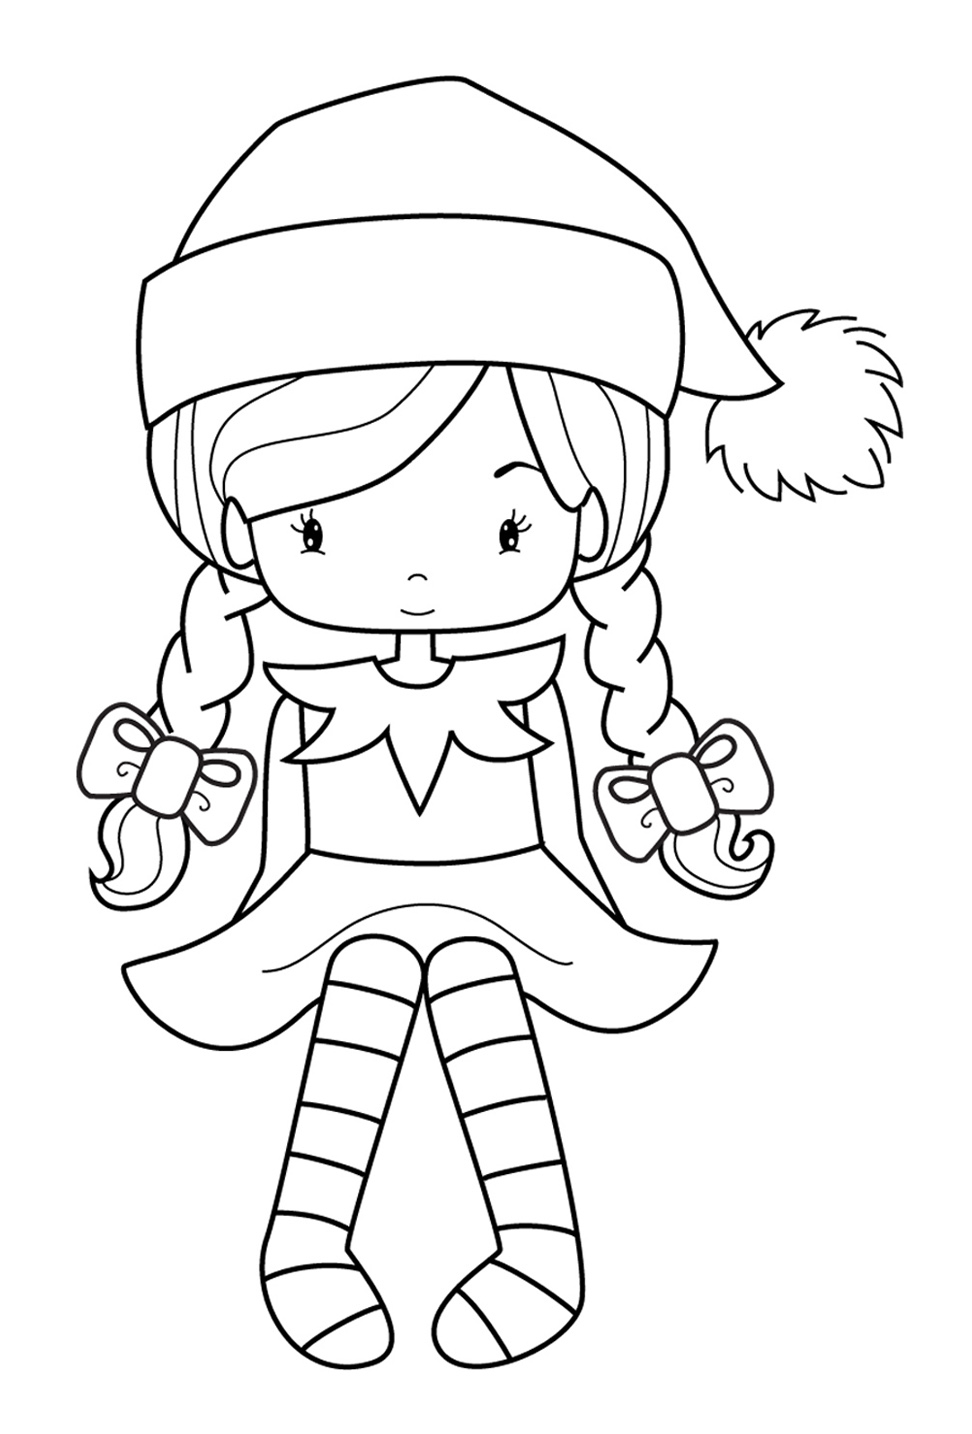 girl elf on a shelf coloring pages | Buddy The Elf Drawing at GetDrawings.com | Free for ...